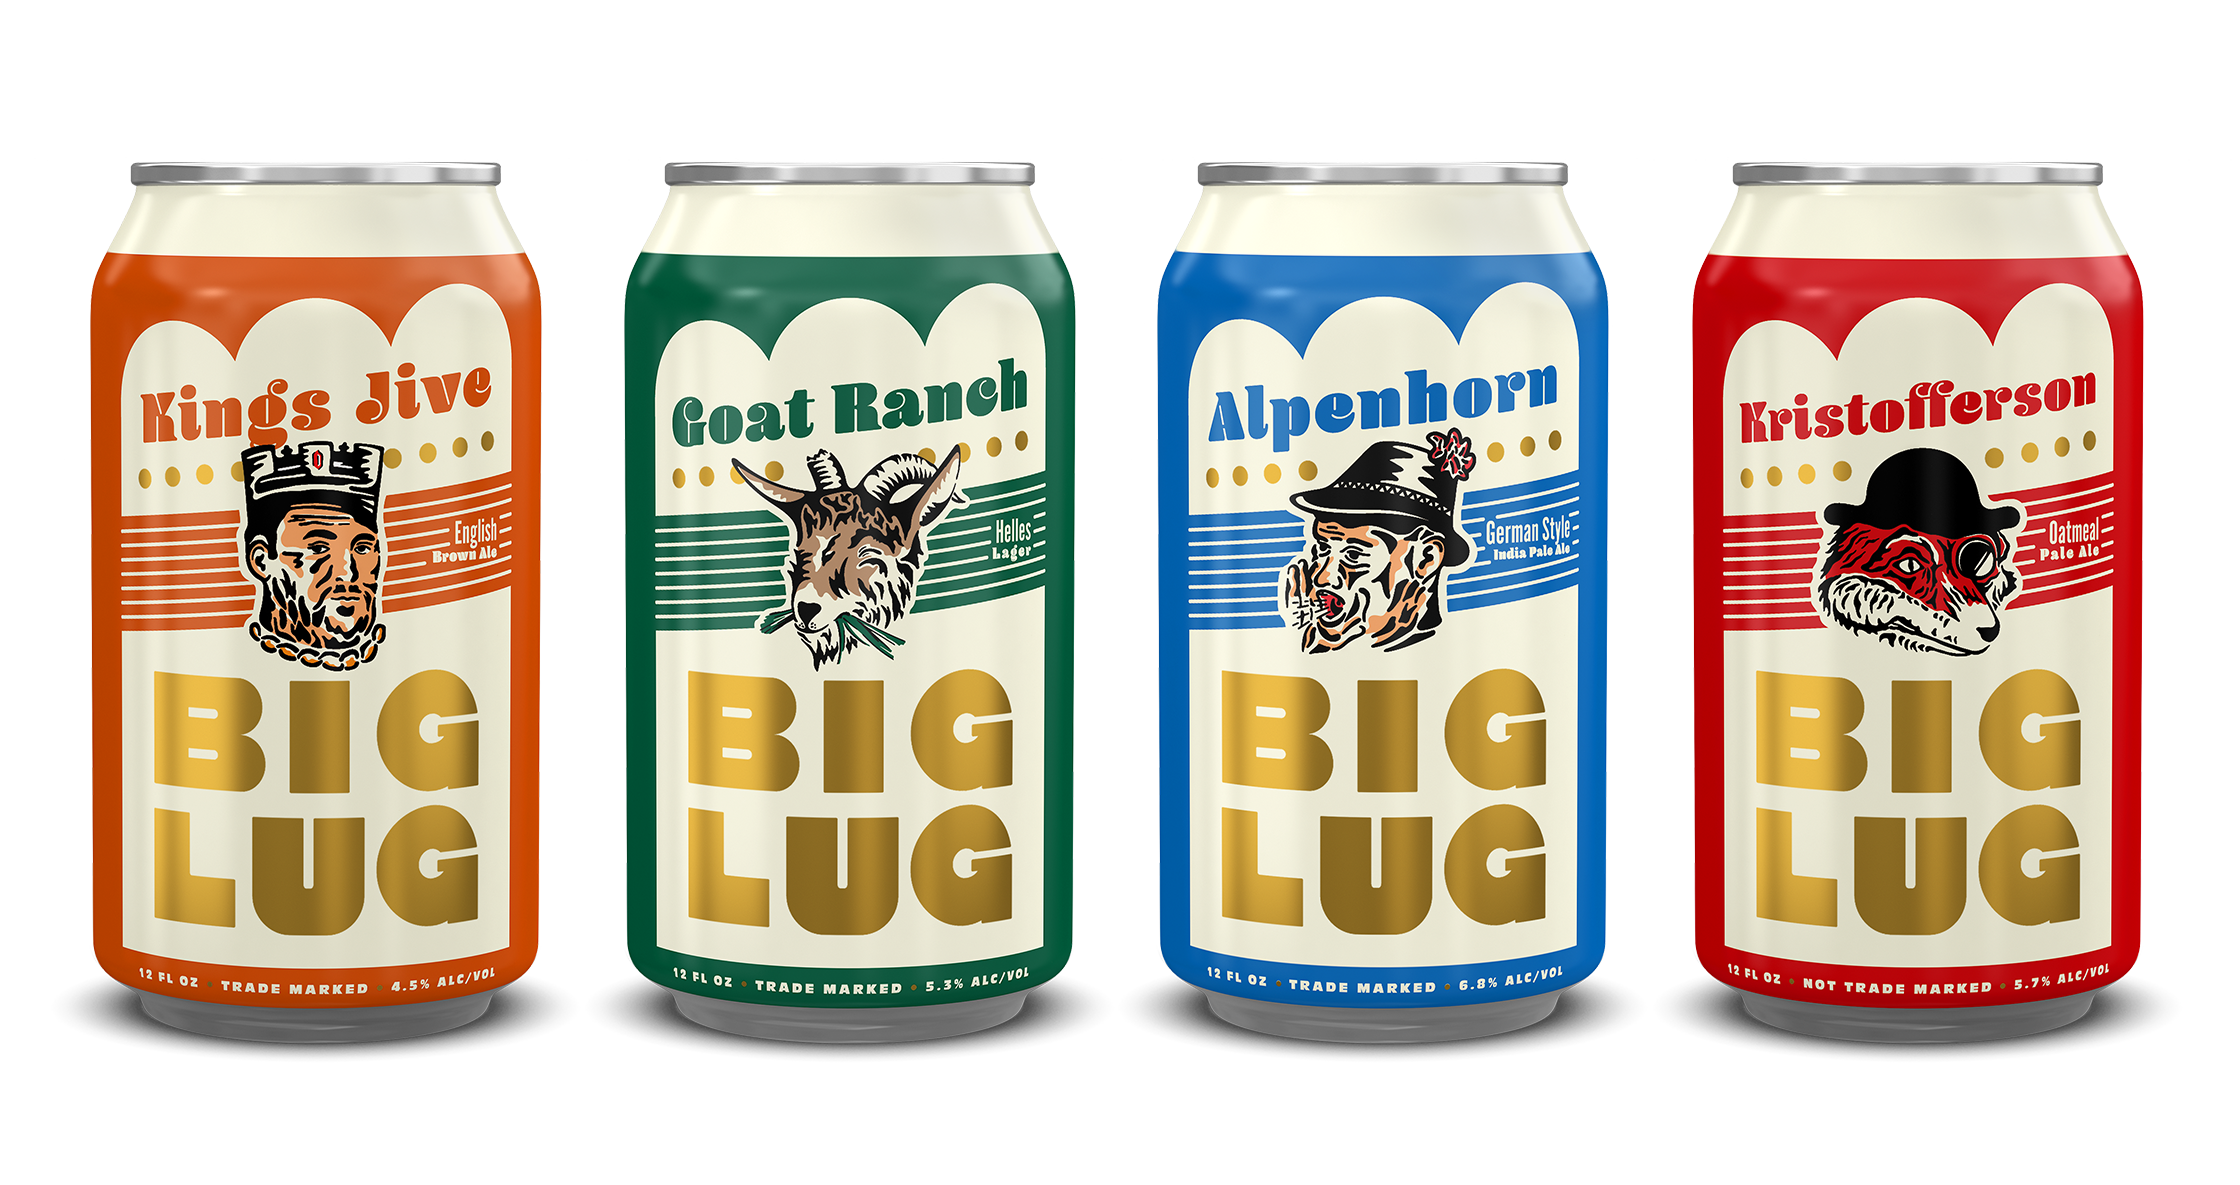 UPDATED – Beer & Branding: Big Lug Cans